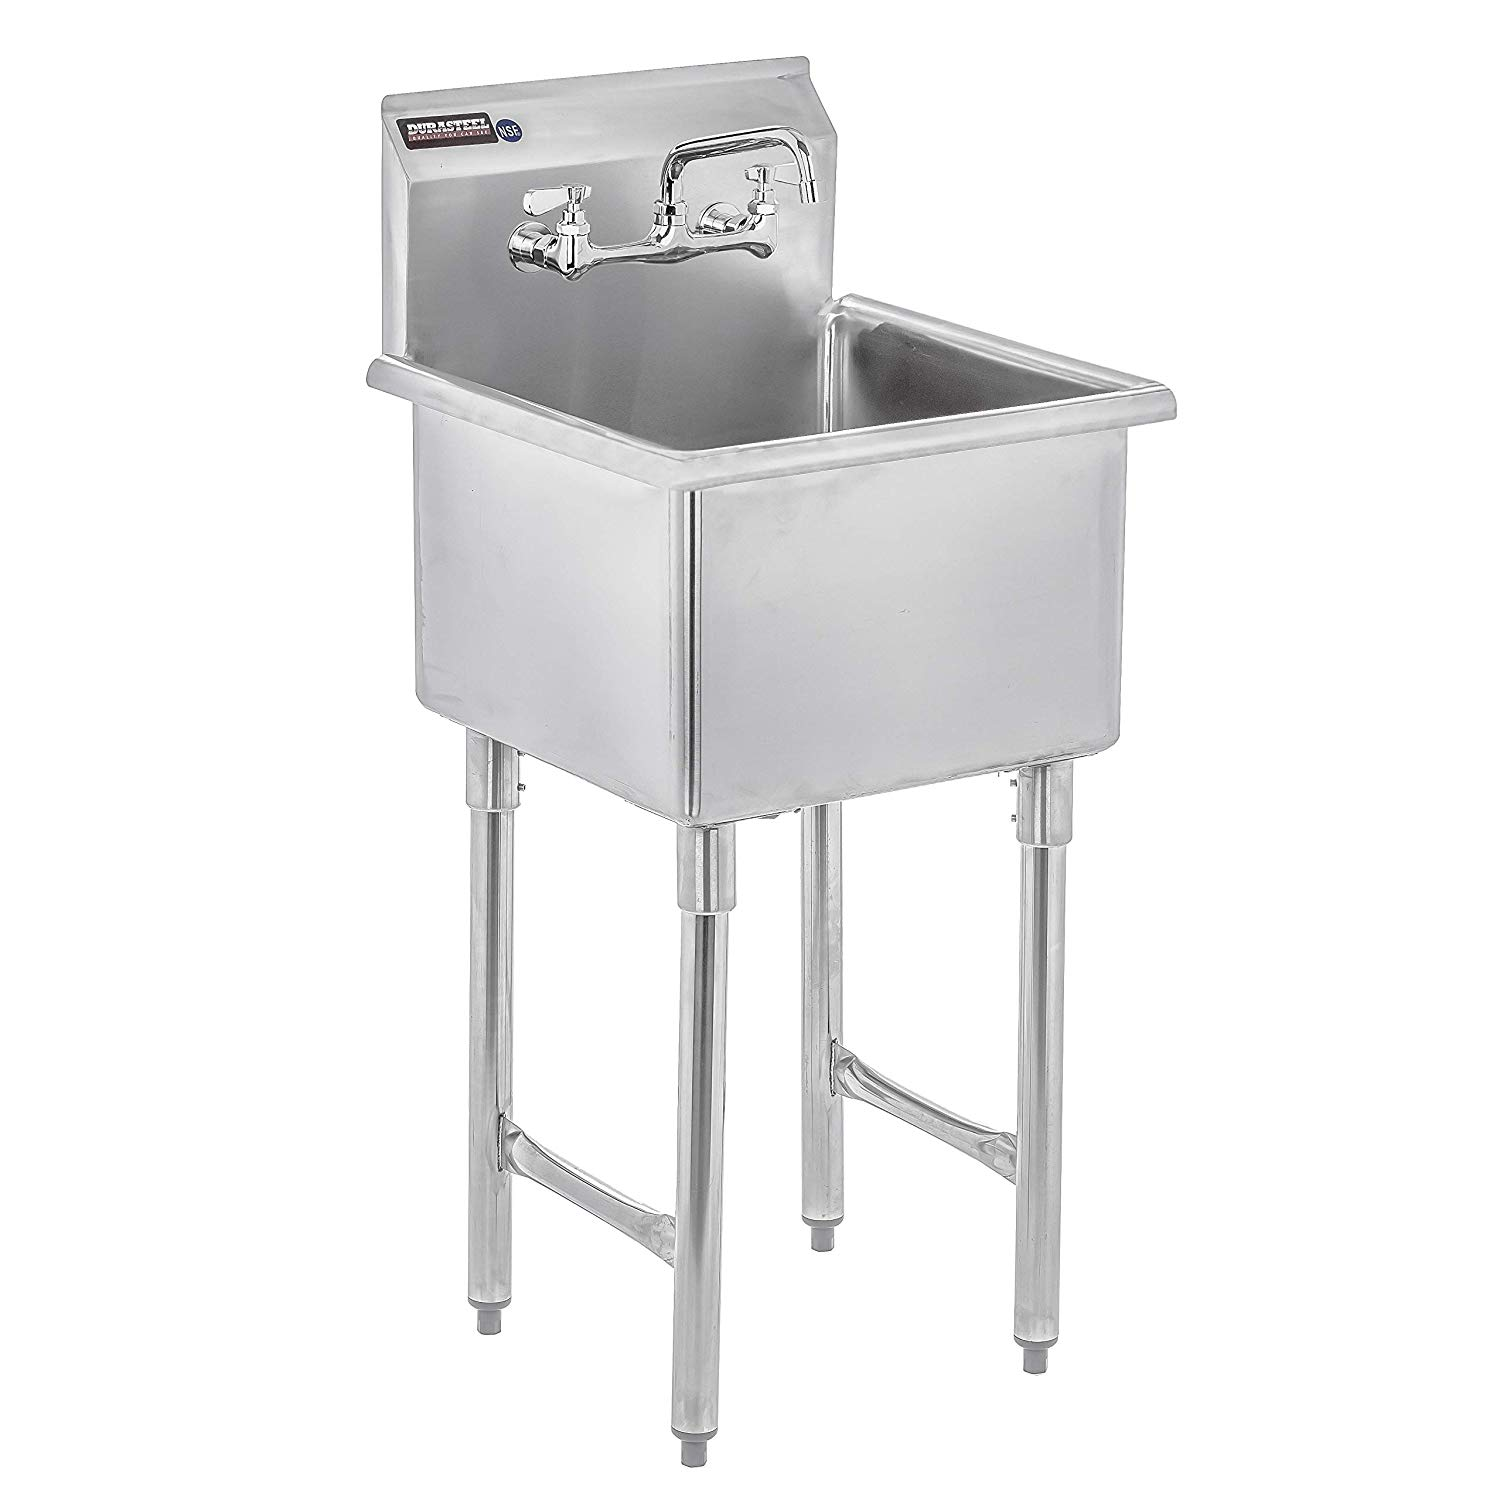 DuraSteel Stainless Steel Prep & Utility Sink - 1 Compartment Commercial Kitchen Sink - NSF Certified